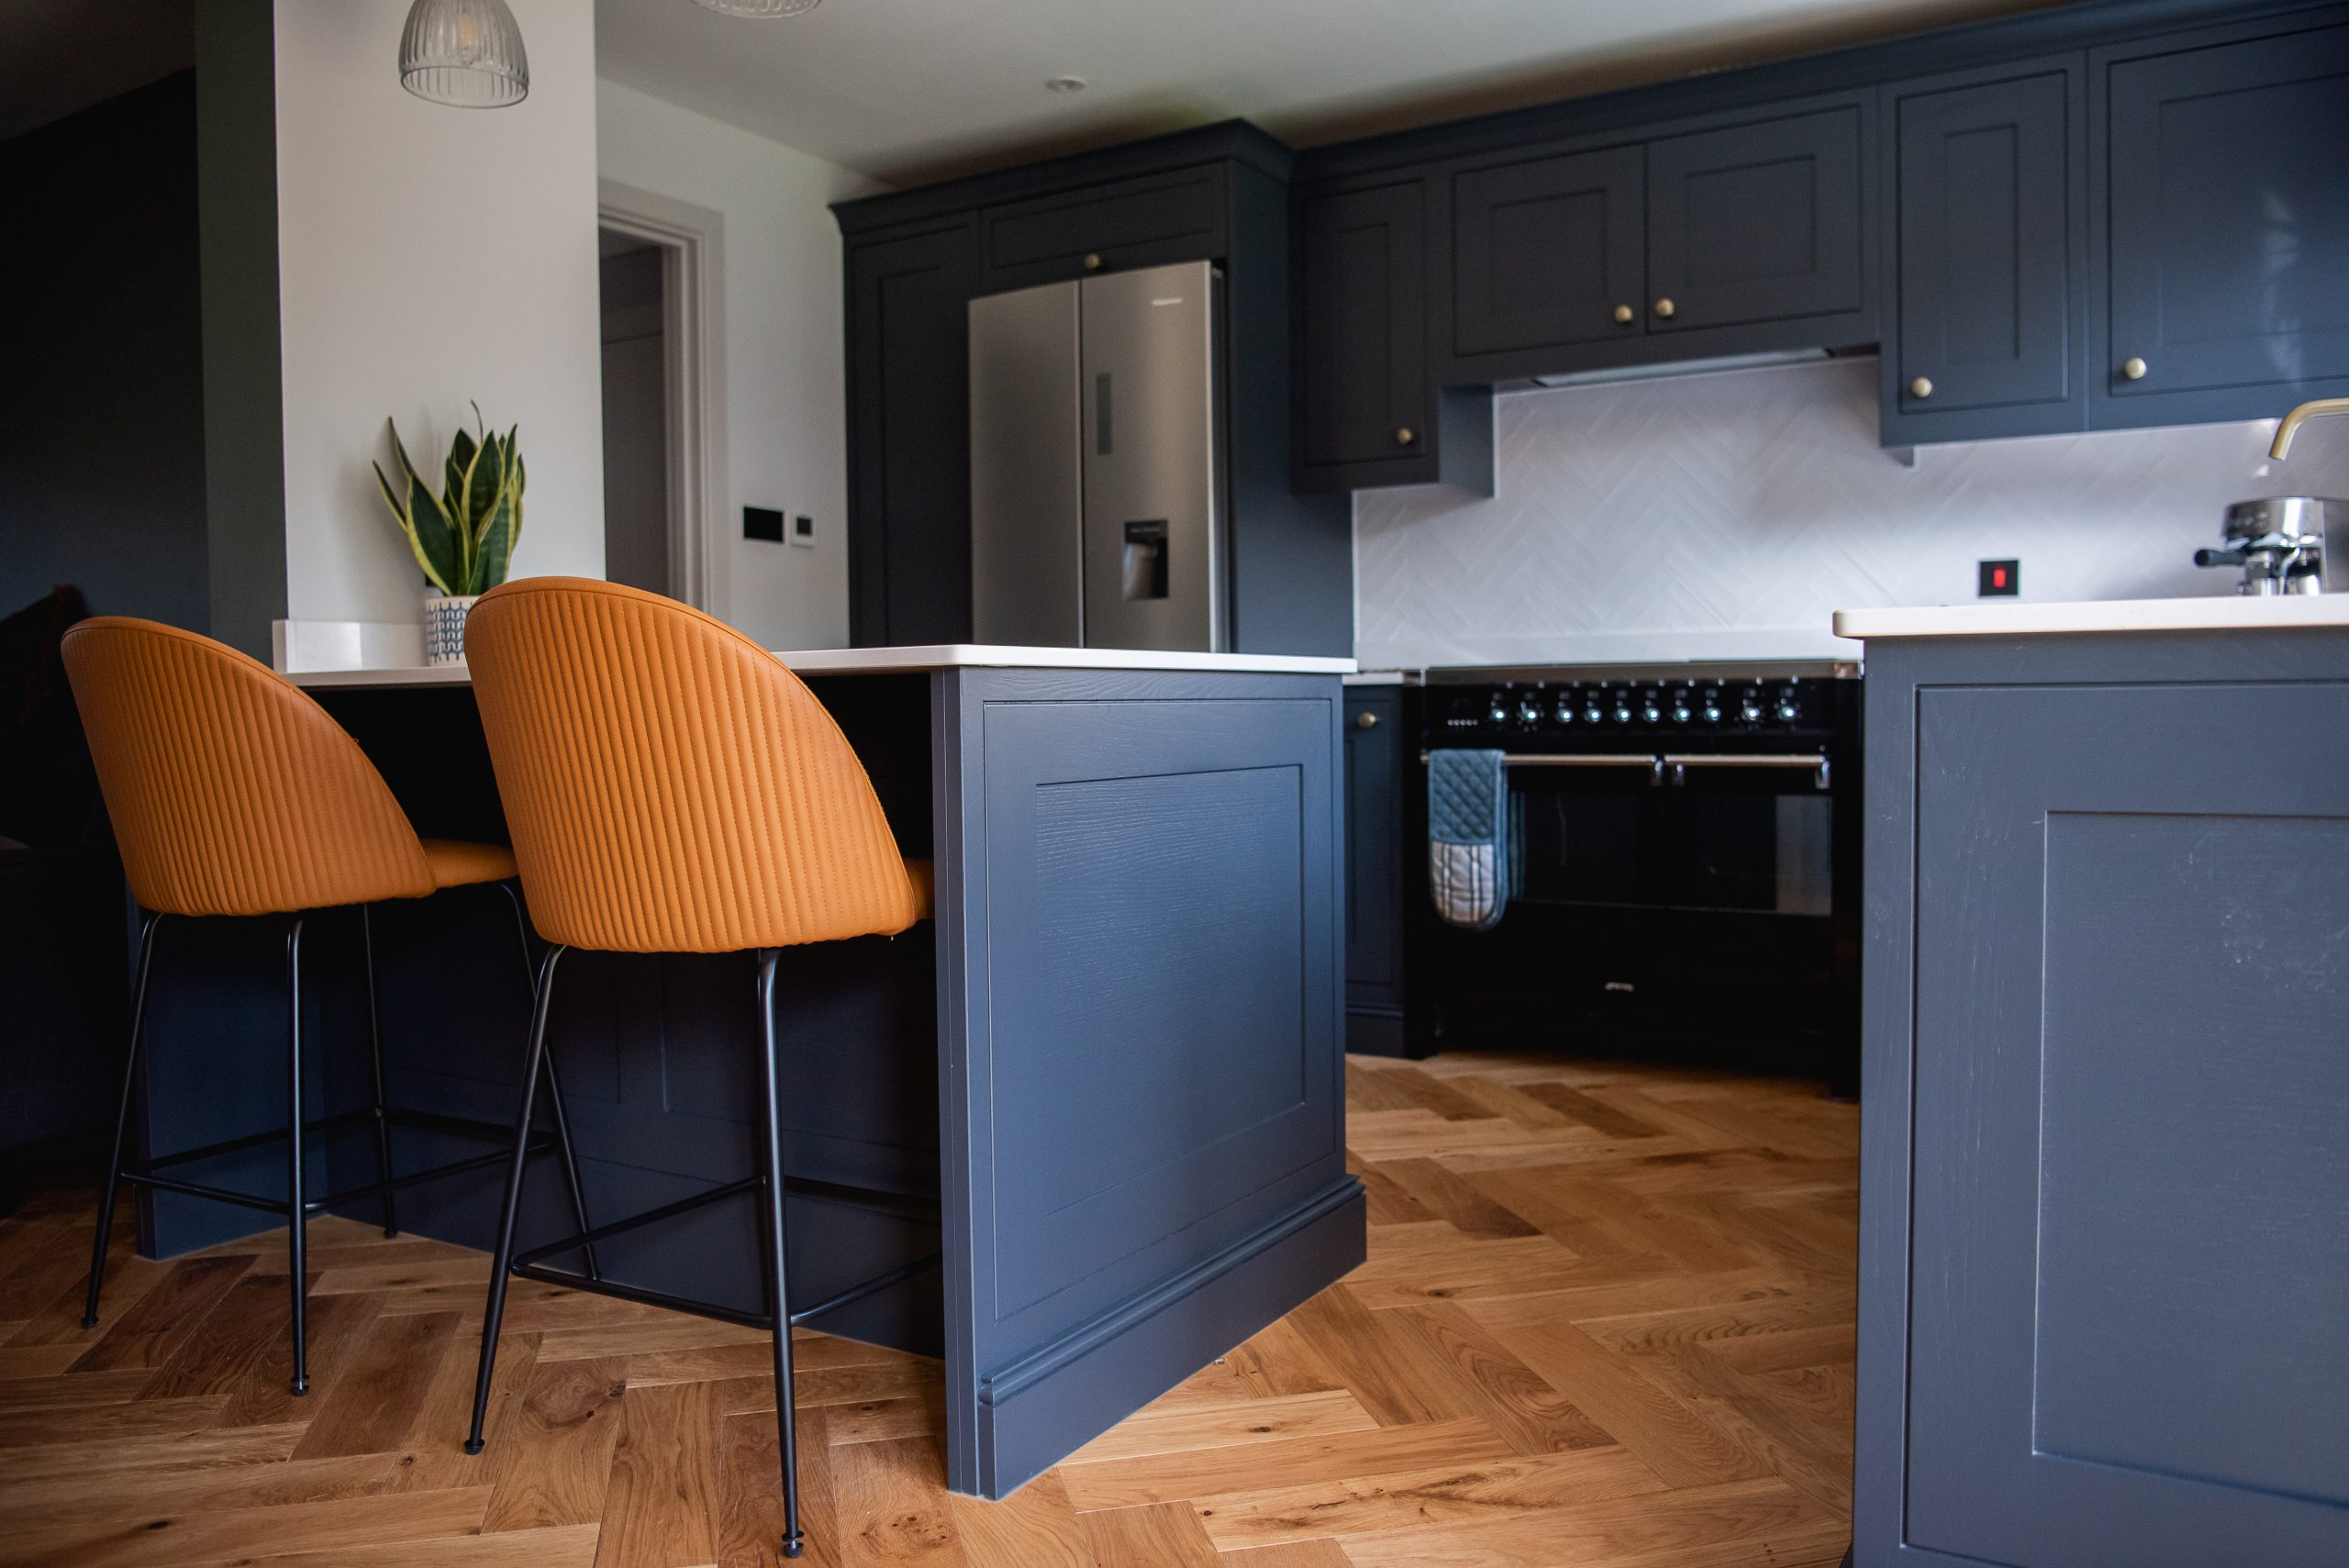 Black shaker kitchen with brass knobs and Silestone worktops with a breakfast bar